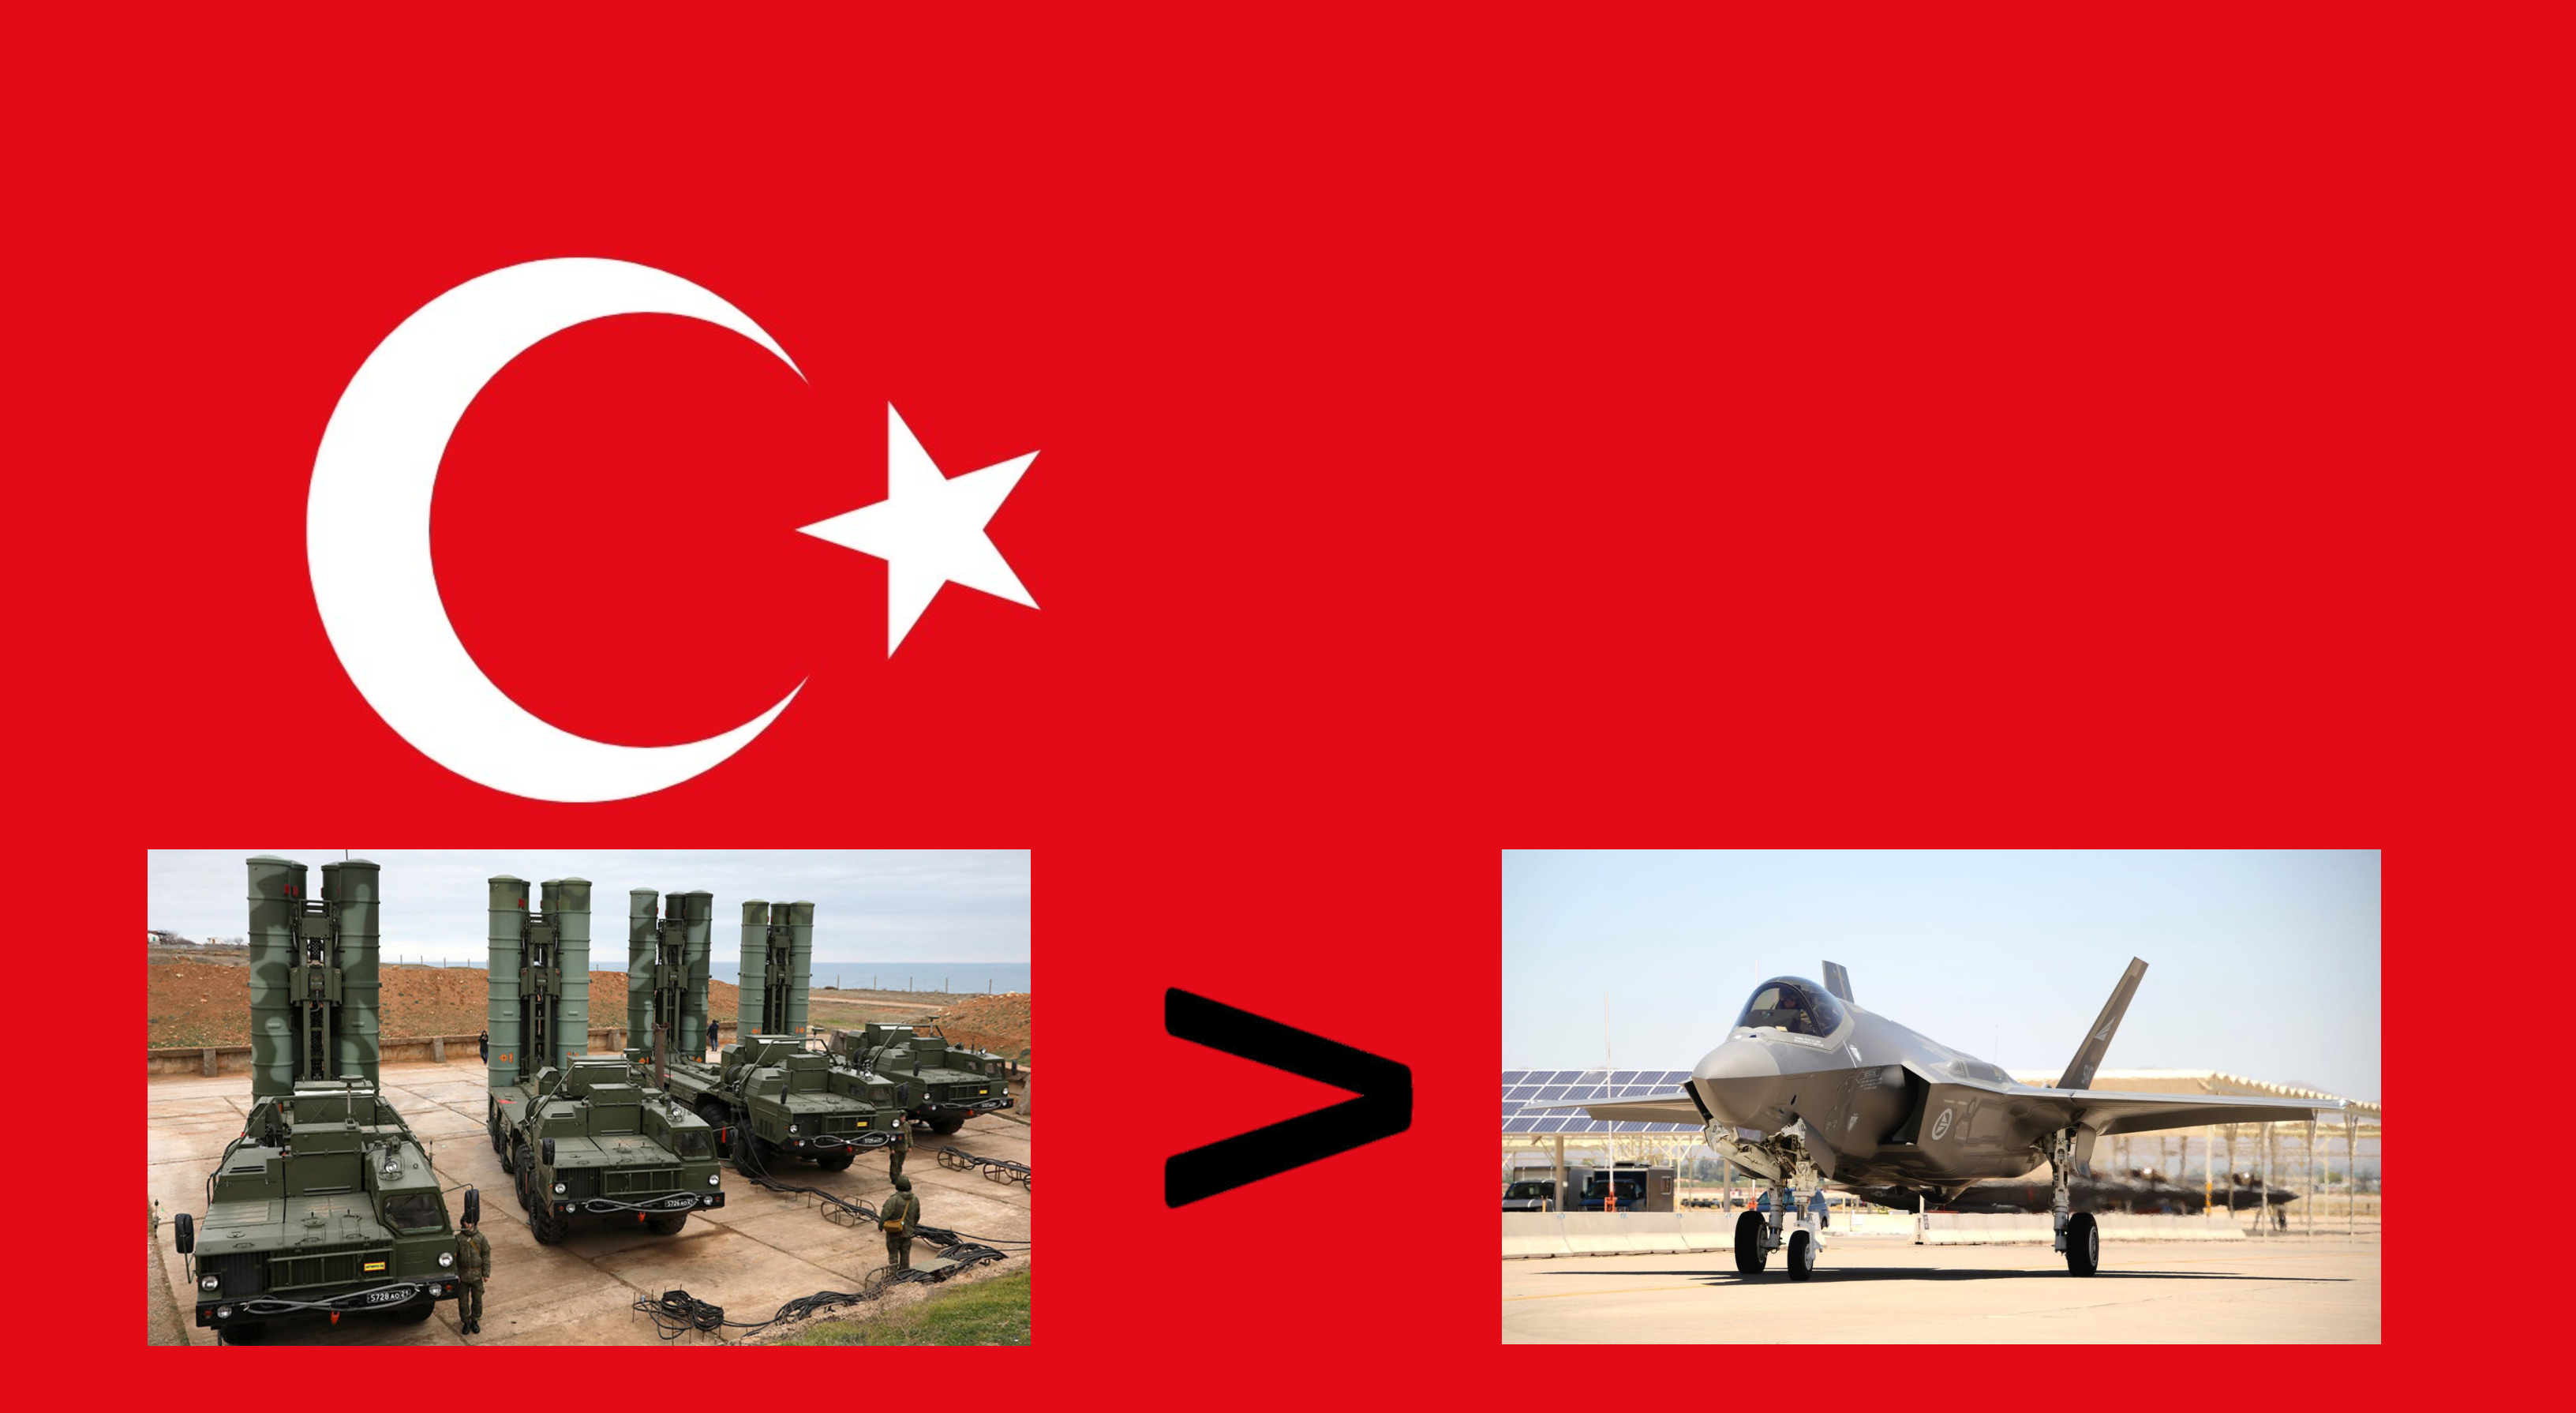 Turkey Removed From F-35 Program Over Russian S-400 Purchase